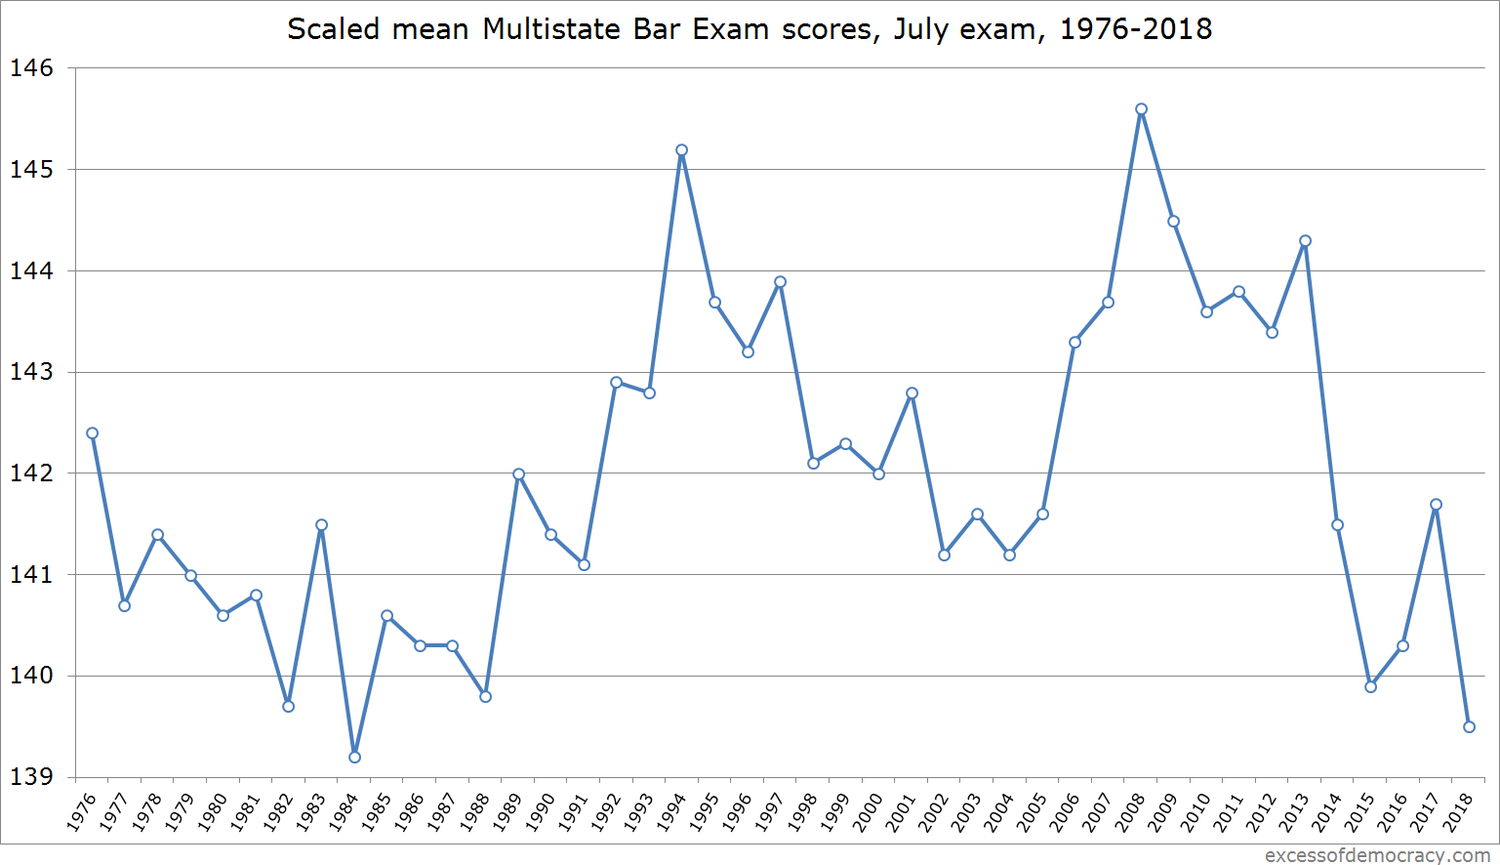 MBE scores drop to 34-year low as bar pass rates decline again